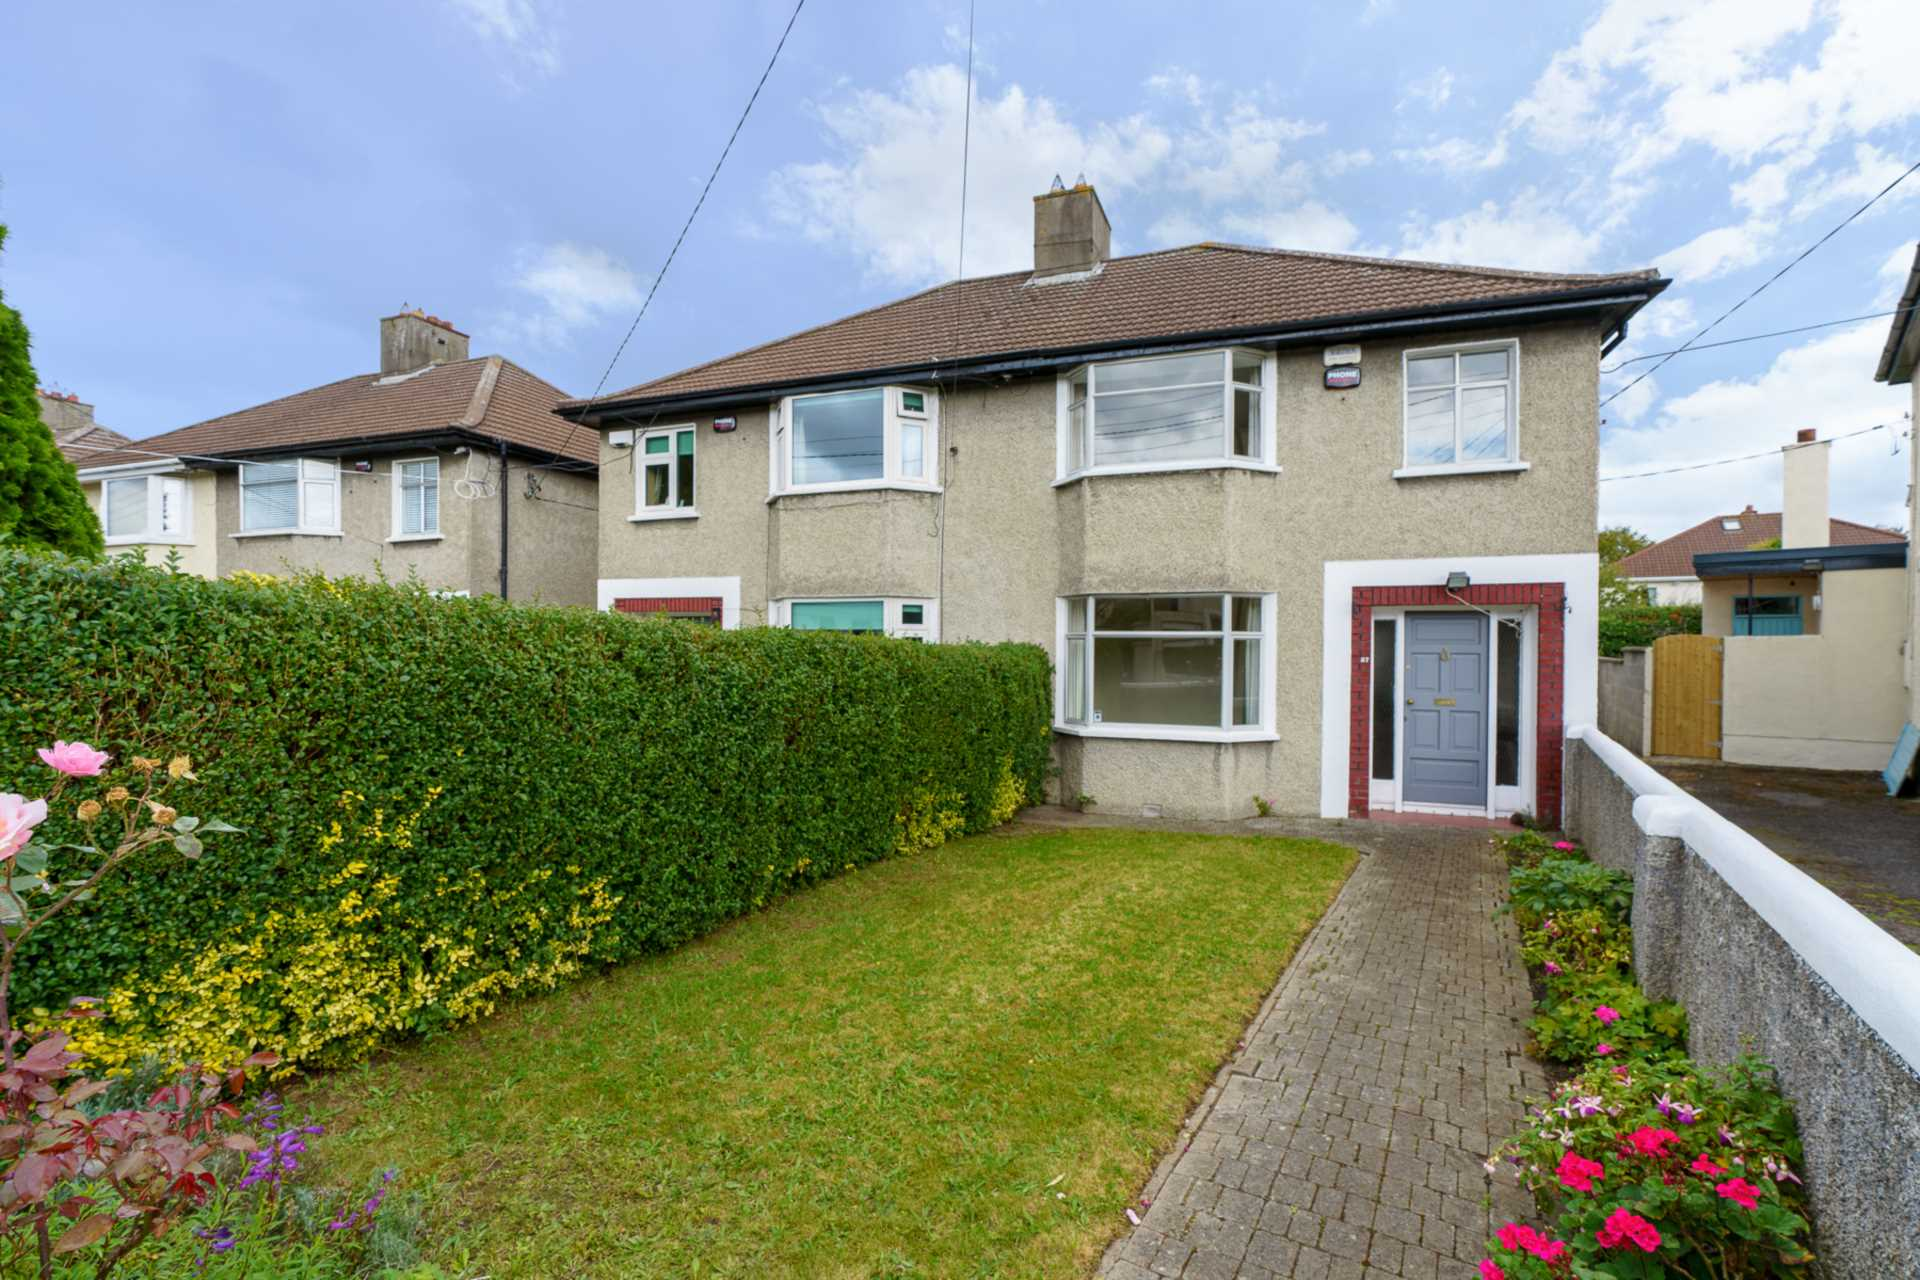 57 Seafield Crescent, Booterstown, Co Dublin, Image 1